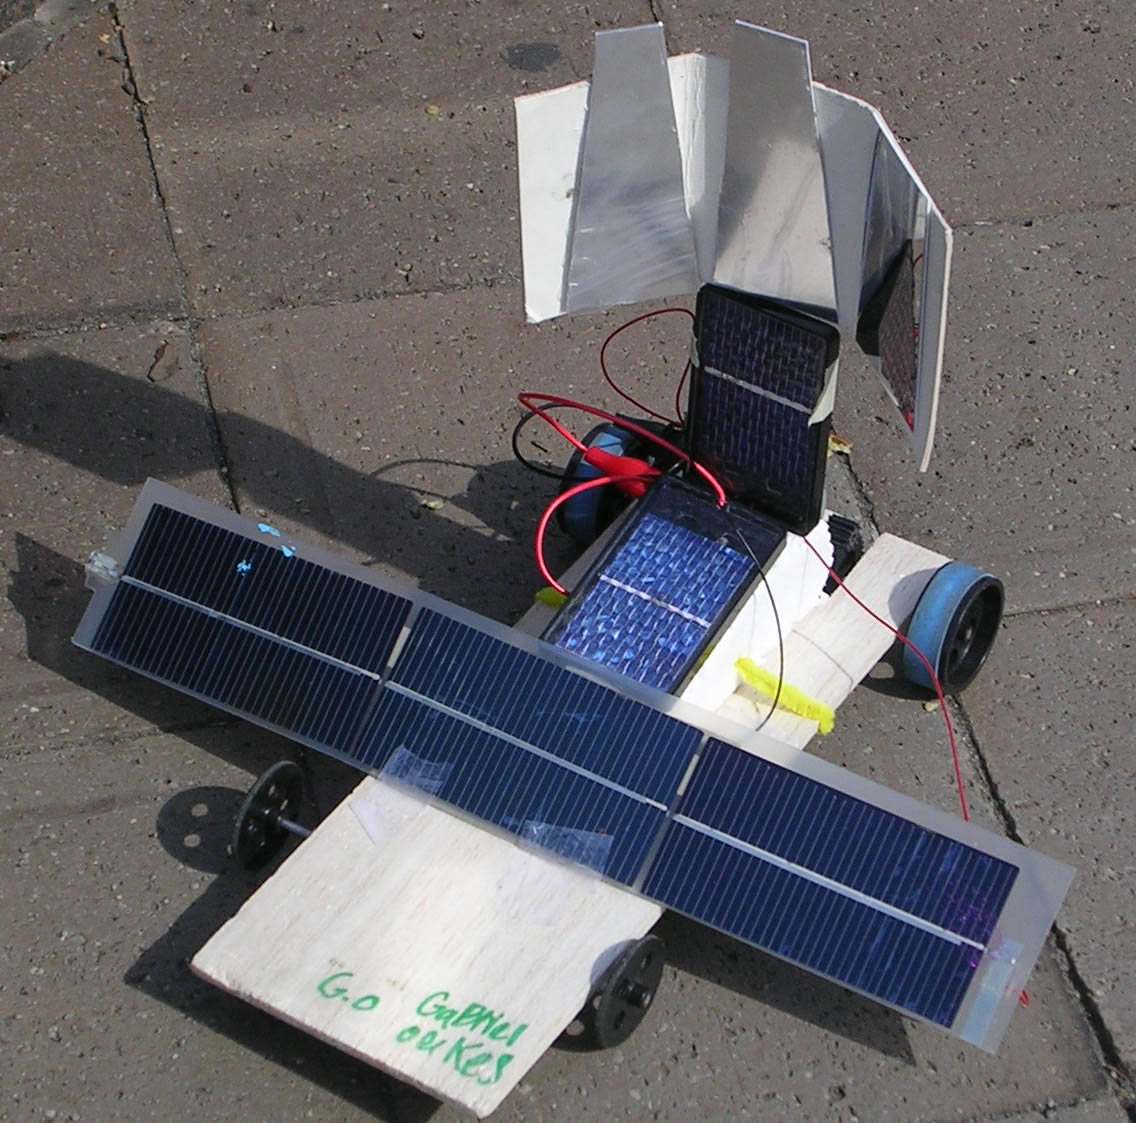 Uw People Programs To Shine At Seattle Science Festival News Solar Cars On Pinterest Powered Car And Children Visiting Expo Day June 2 Will Get Build Race Model